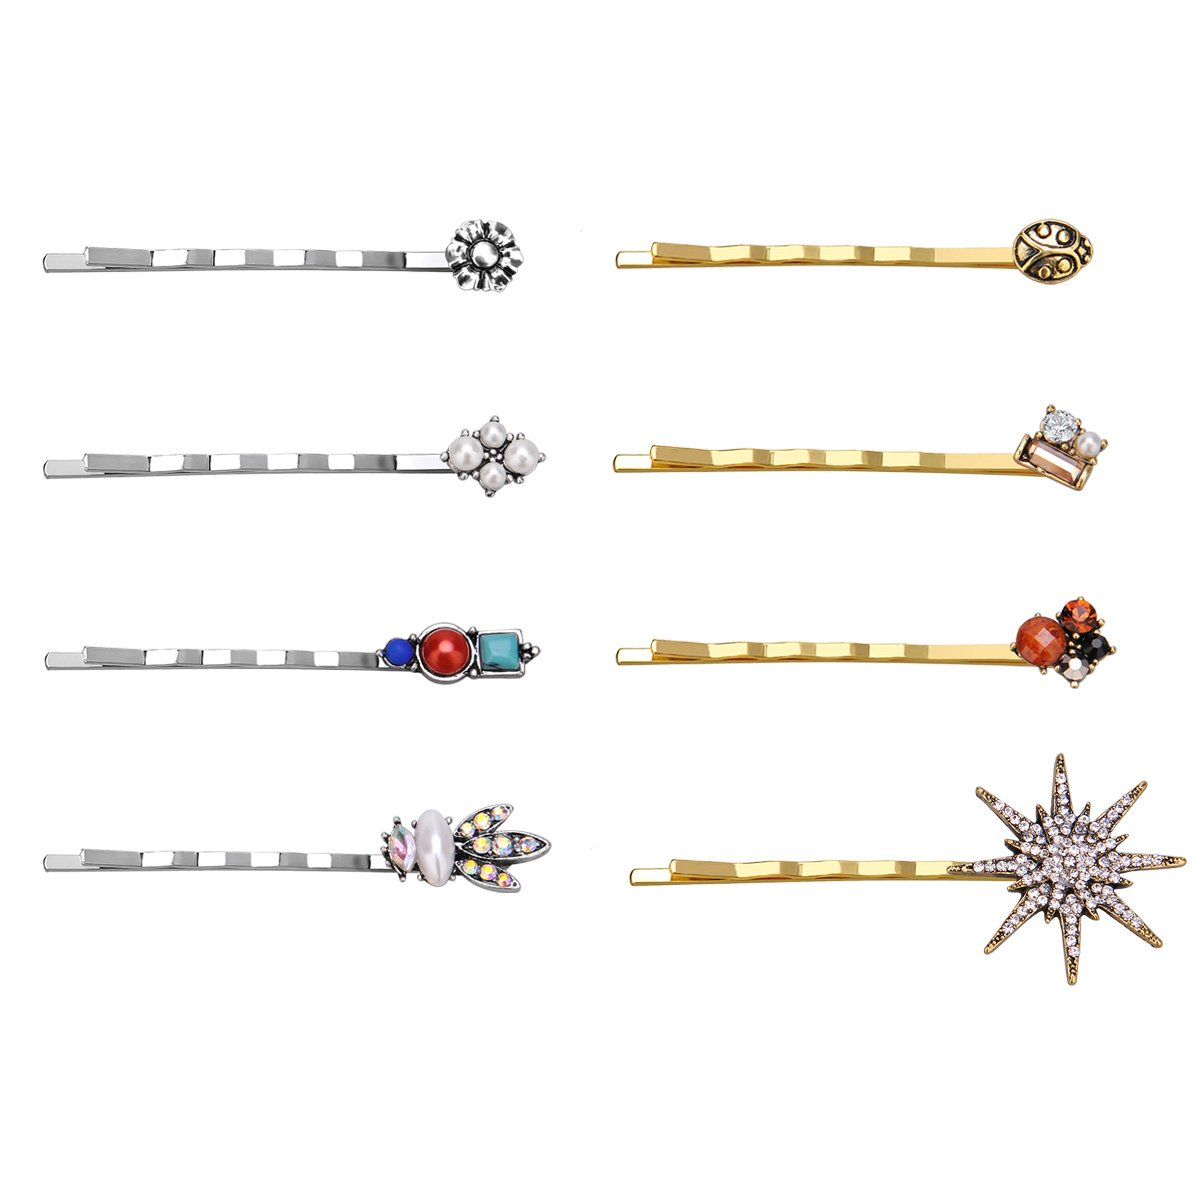 IPINK-Decorative Bobby Pins Hairpin Flower Star Crystal Hair Side Clip Barrette Pin Hairpin Hair Accessories 17ZTD040-43